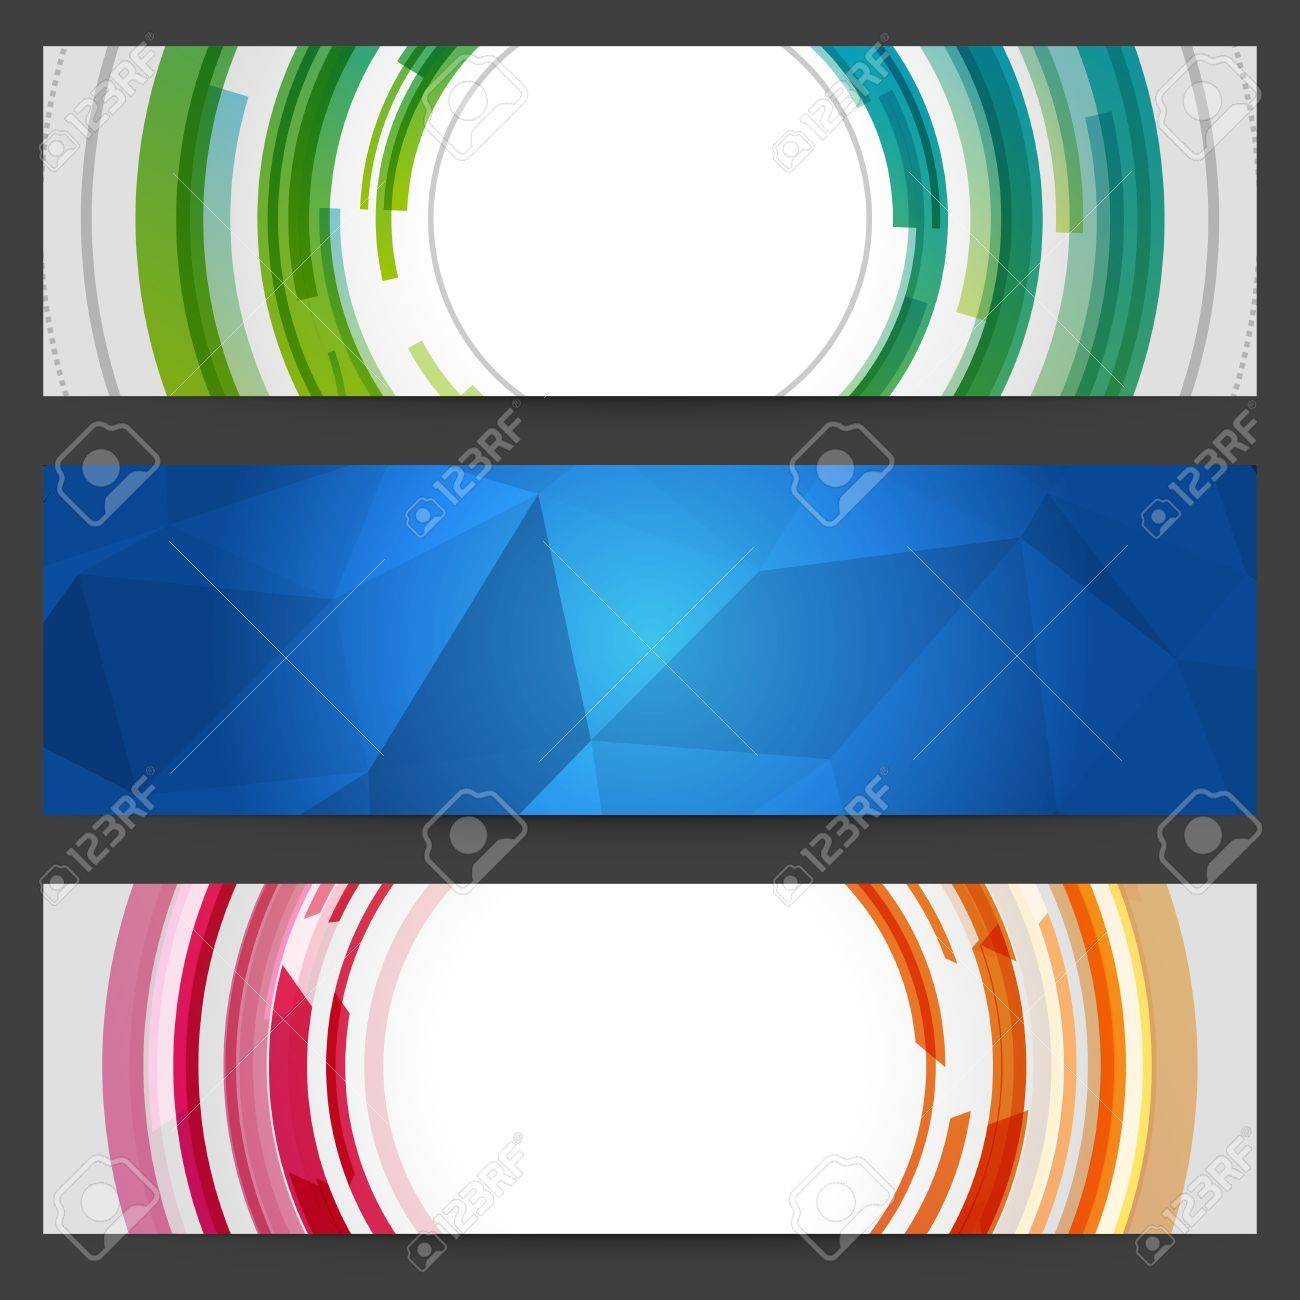 Abstract trendy vector banner or header set eps 10 Stock Vector - 13014412